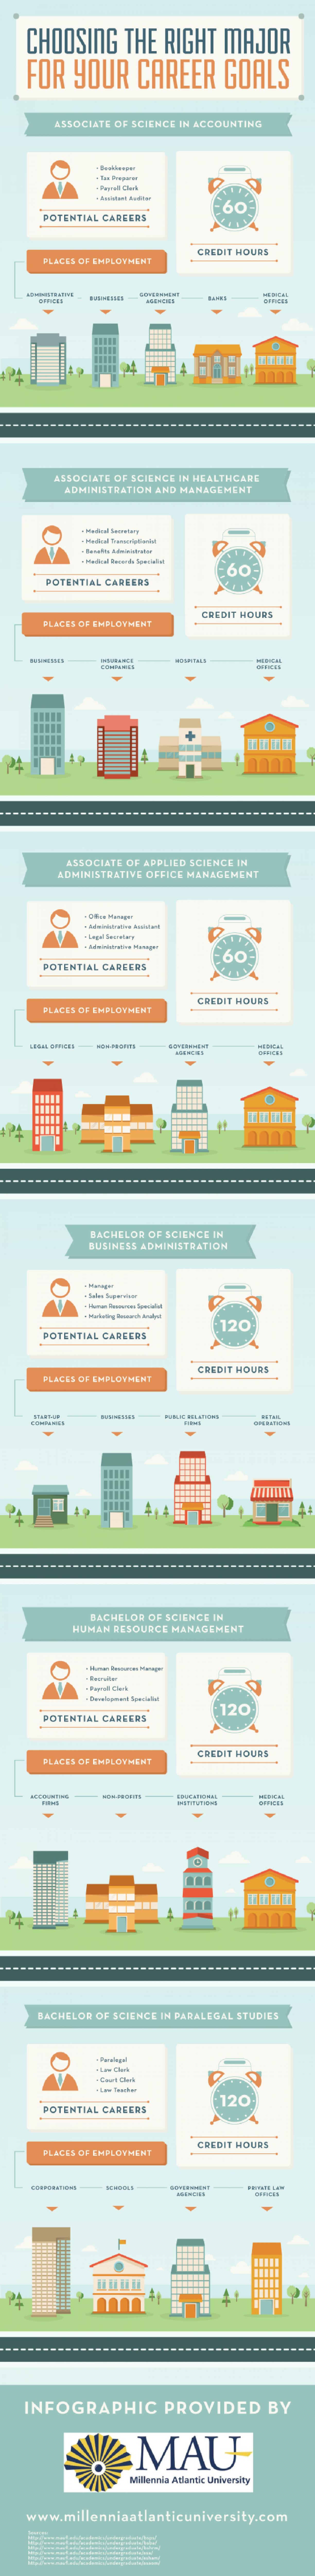 choosing the right major for your career goals ly choosing the right major for your career goals infographic